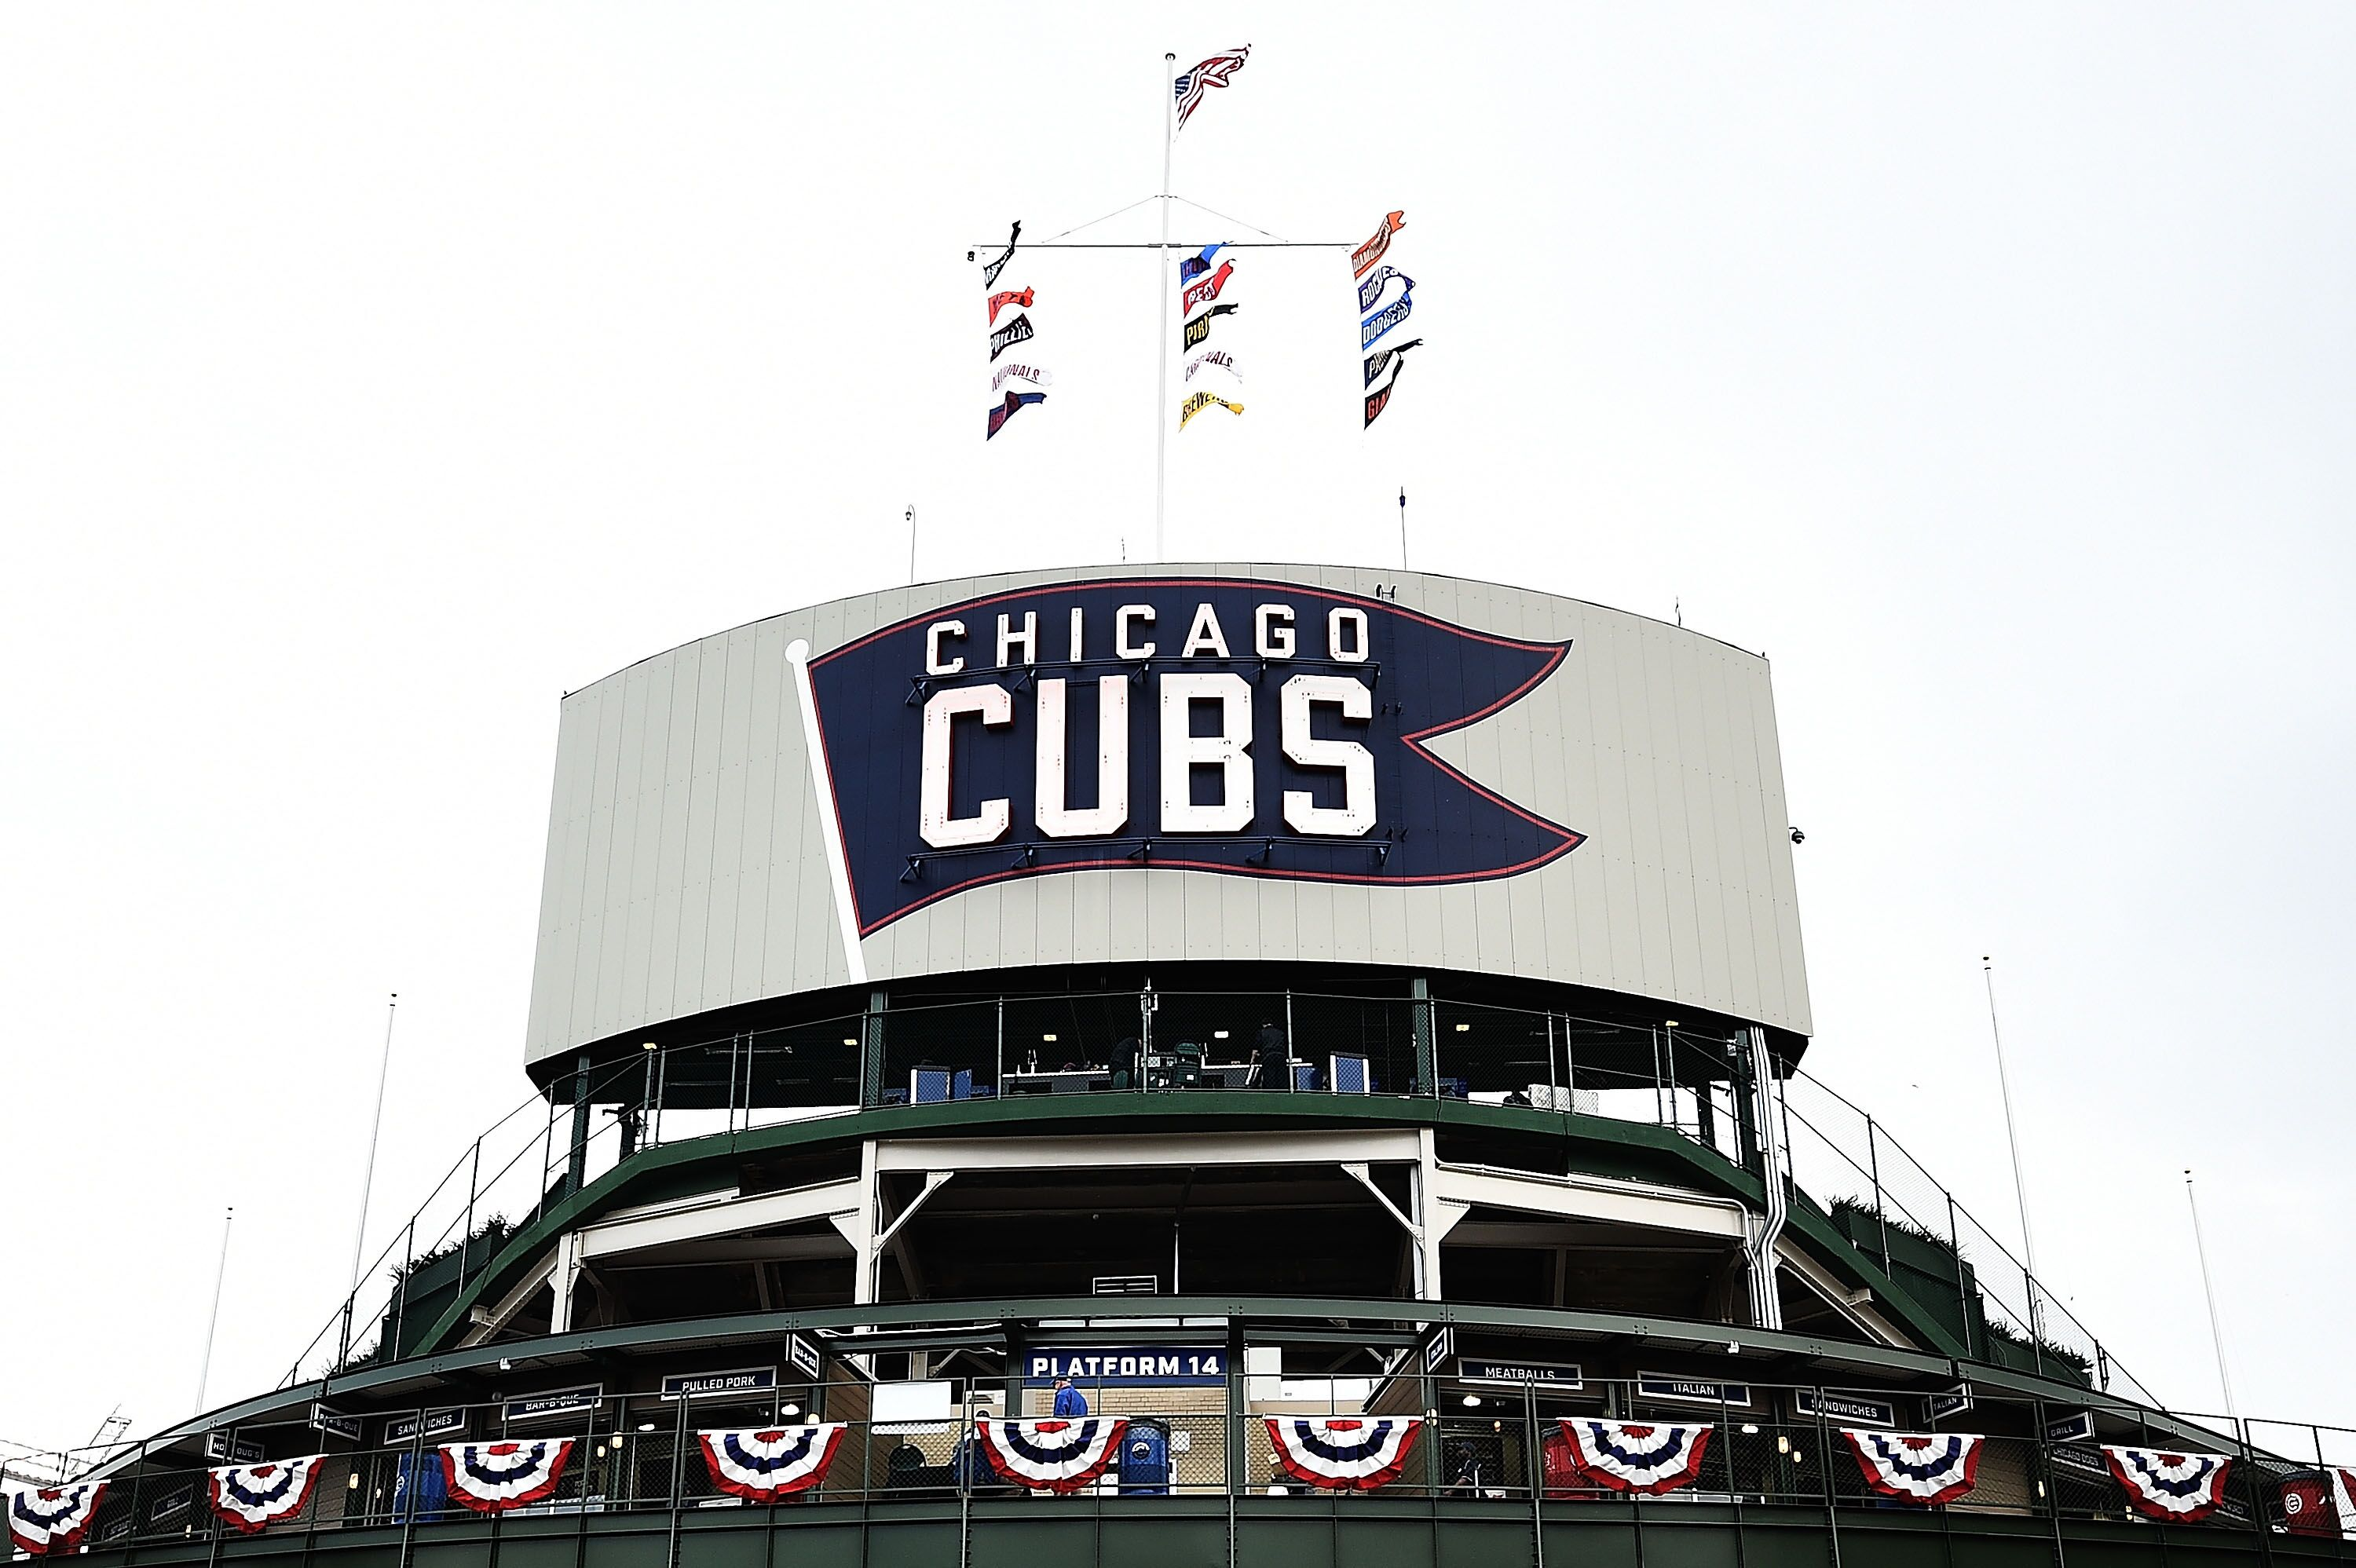 Chicago Cubs: South Bend to embrace Latino culture in 2020